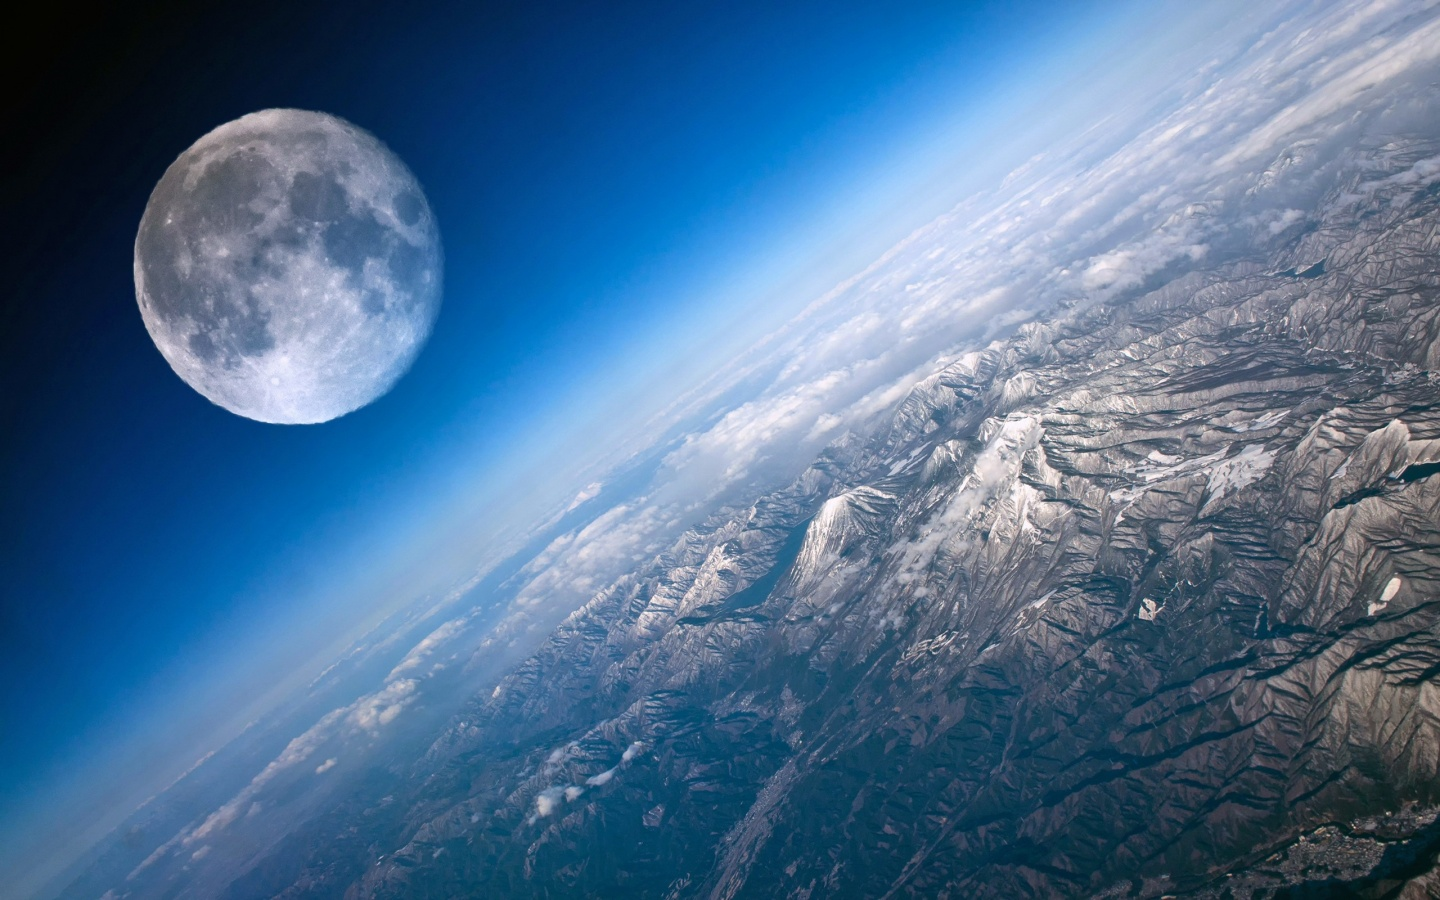 50 HD Earth Wallpapers To Download For Free